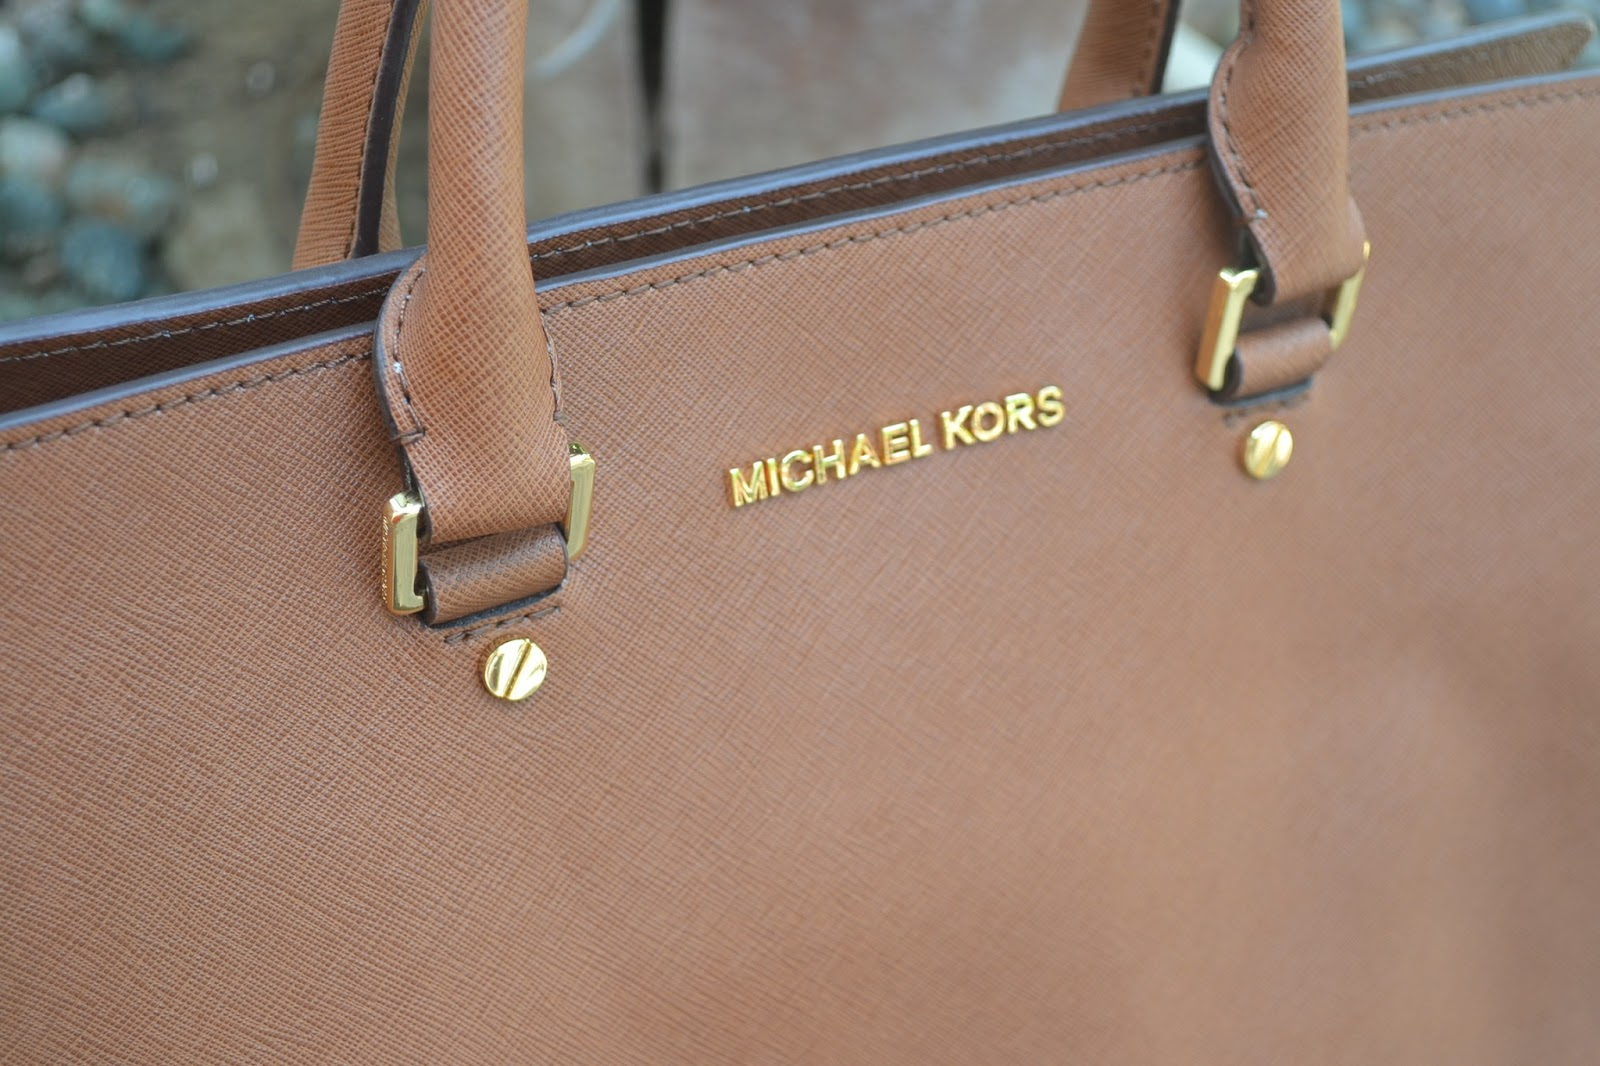 Michael kors tote bags philippines - It Has A Gold Logo At The Top Center Of The Bag